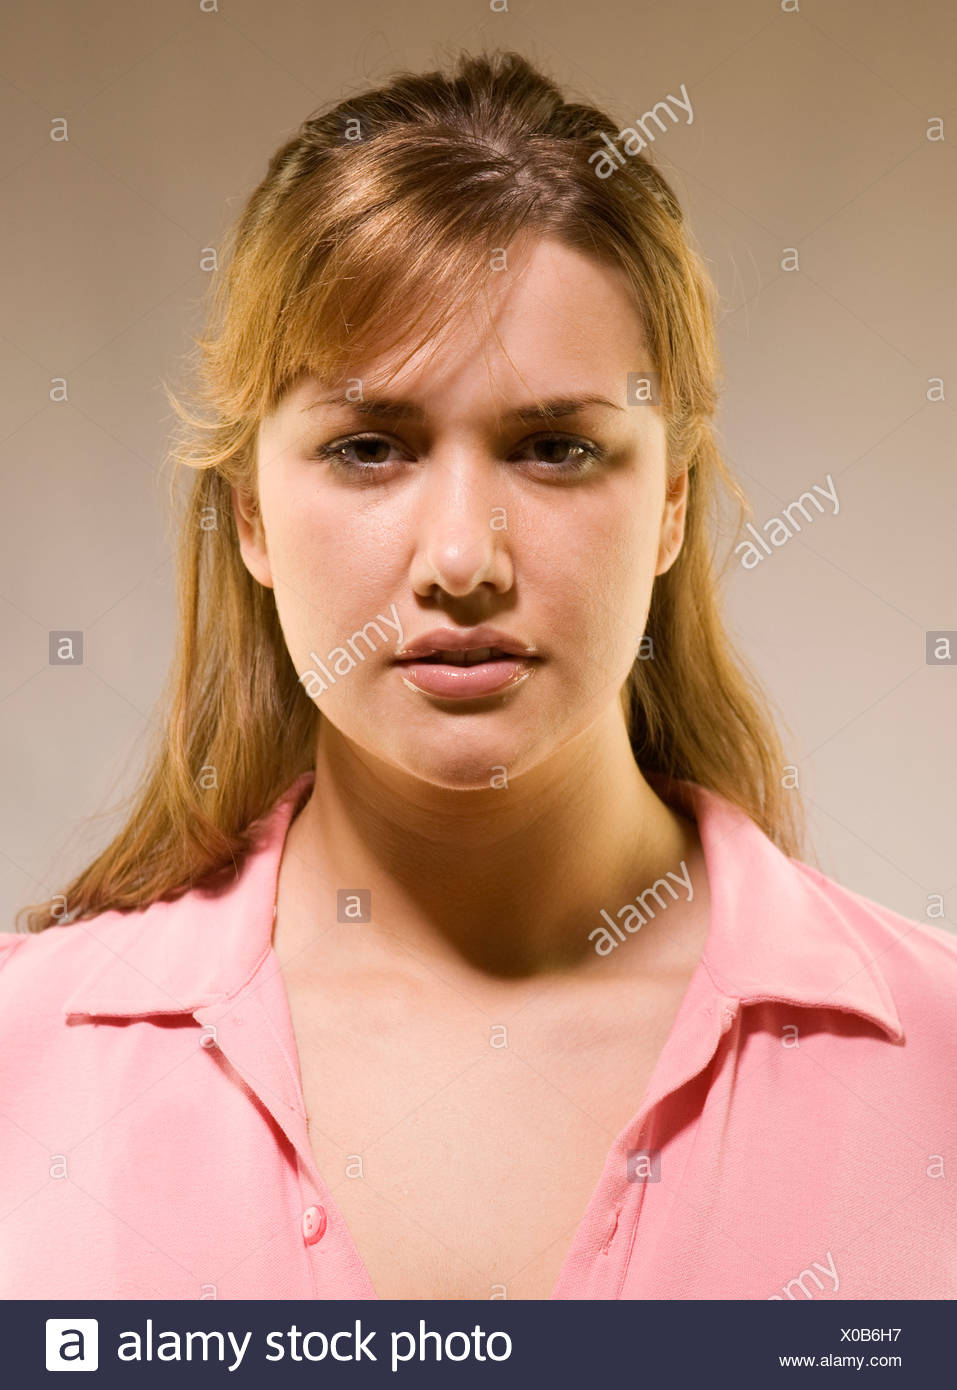 Portrait of woman with serious and concerned expression - Stock Image